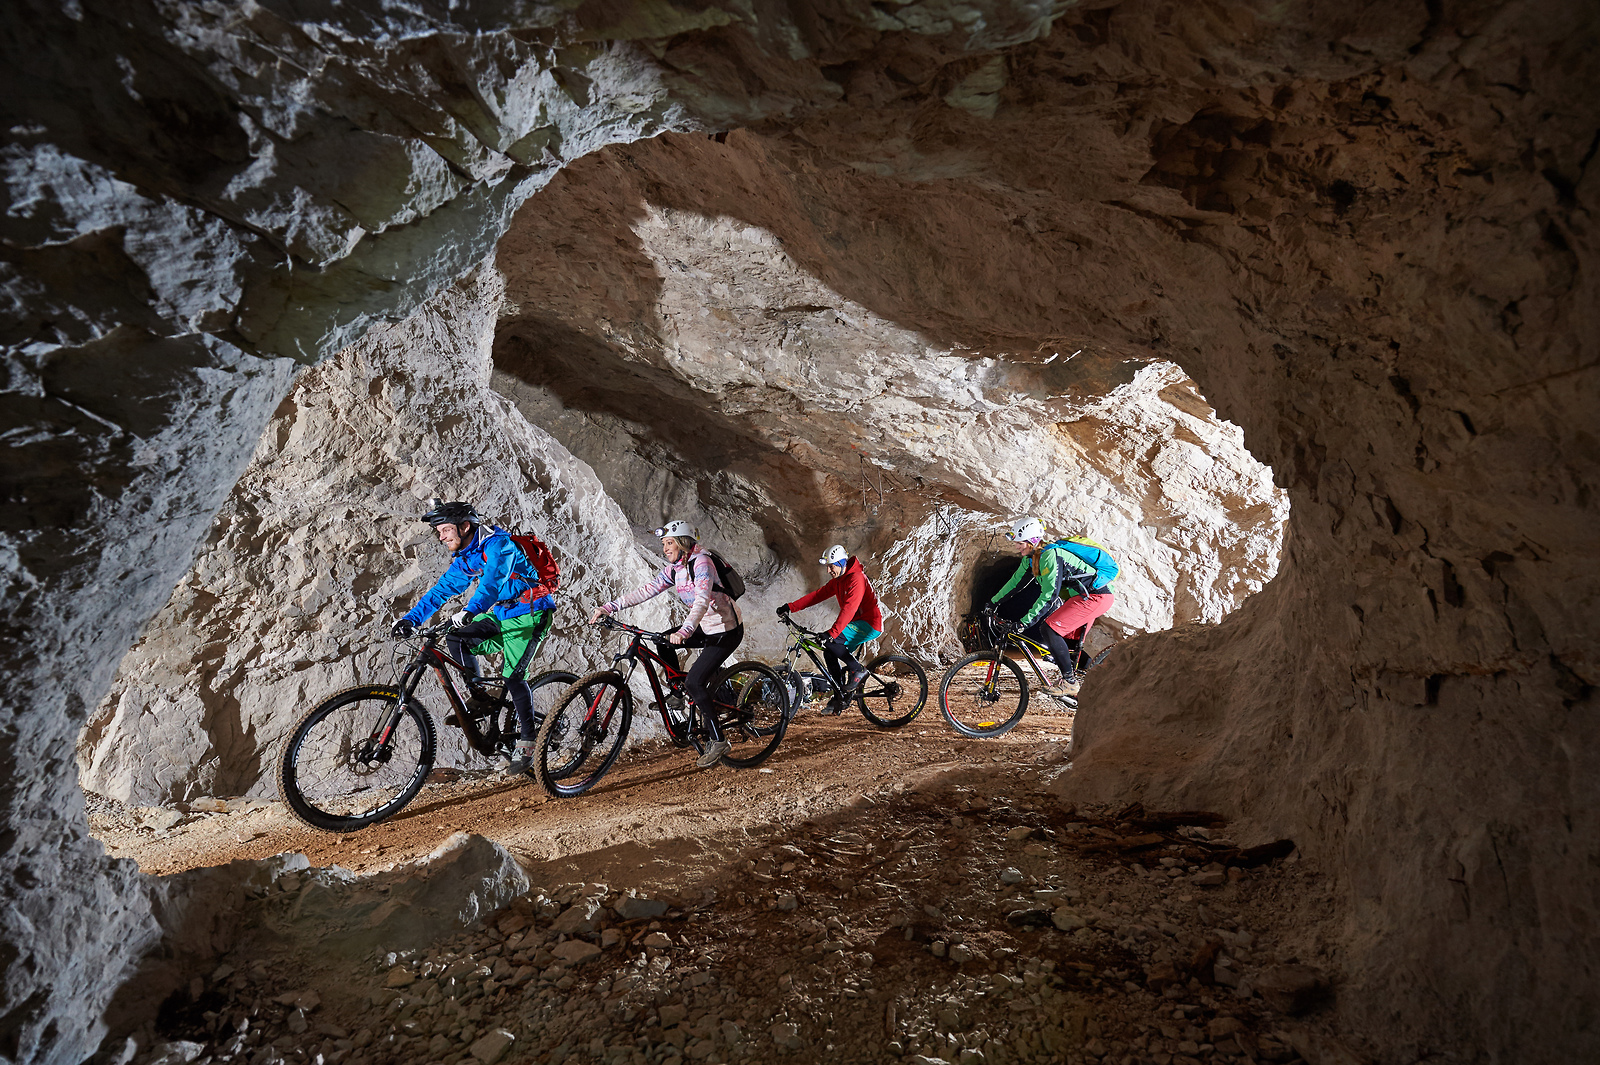 underground cycling route under Mount Peca